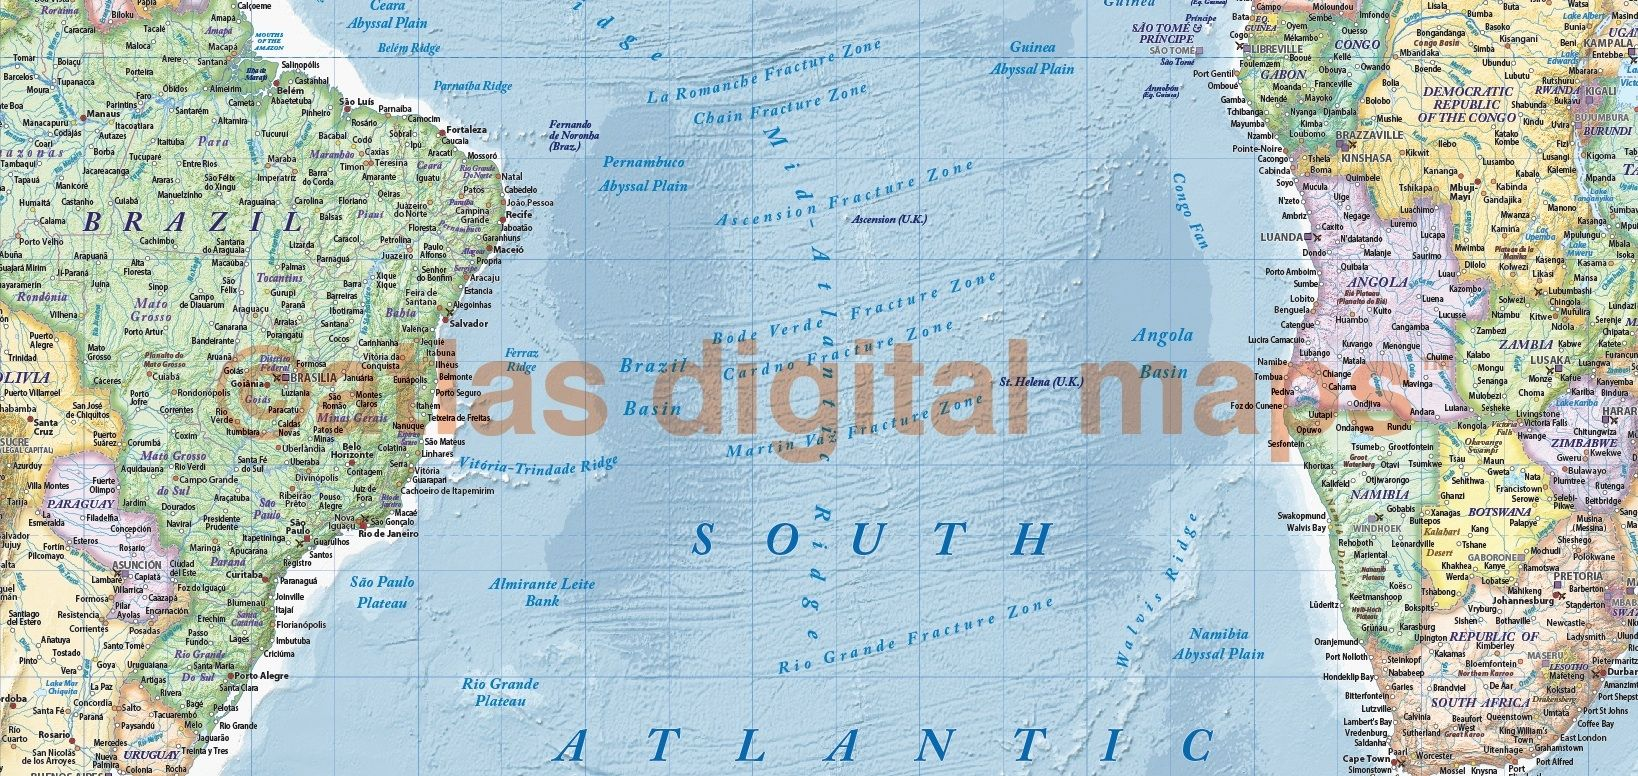 Political and ocean relief map of south america west africa and the canvas world wall map wide x deep a unique and classic fine quality political world map with light colours ocean floor contour relief gumiabroncs Images